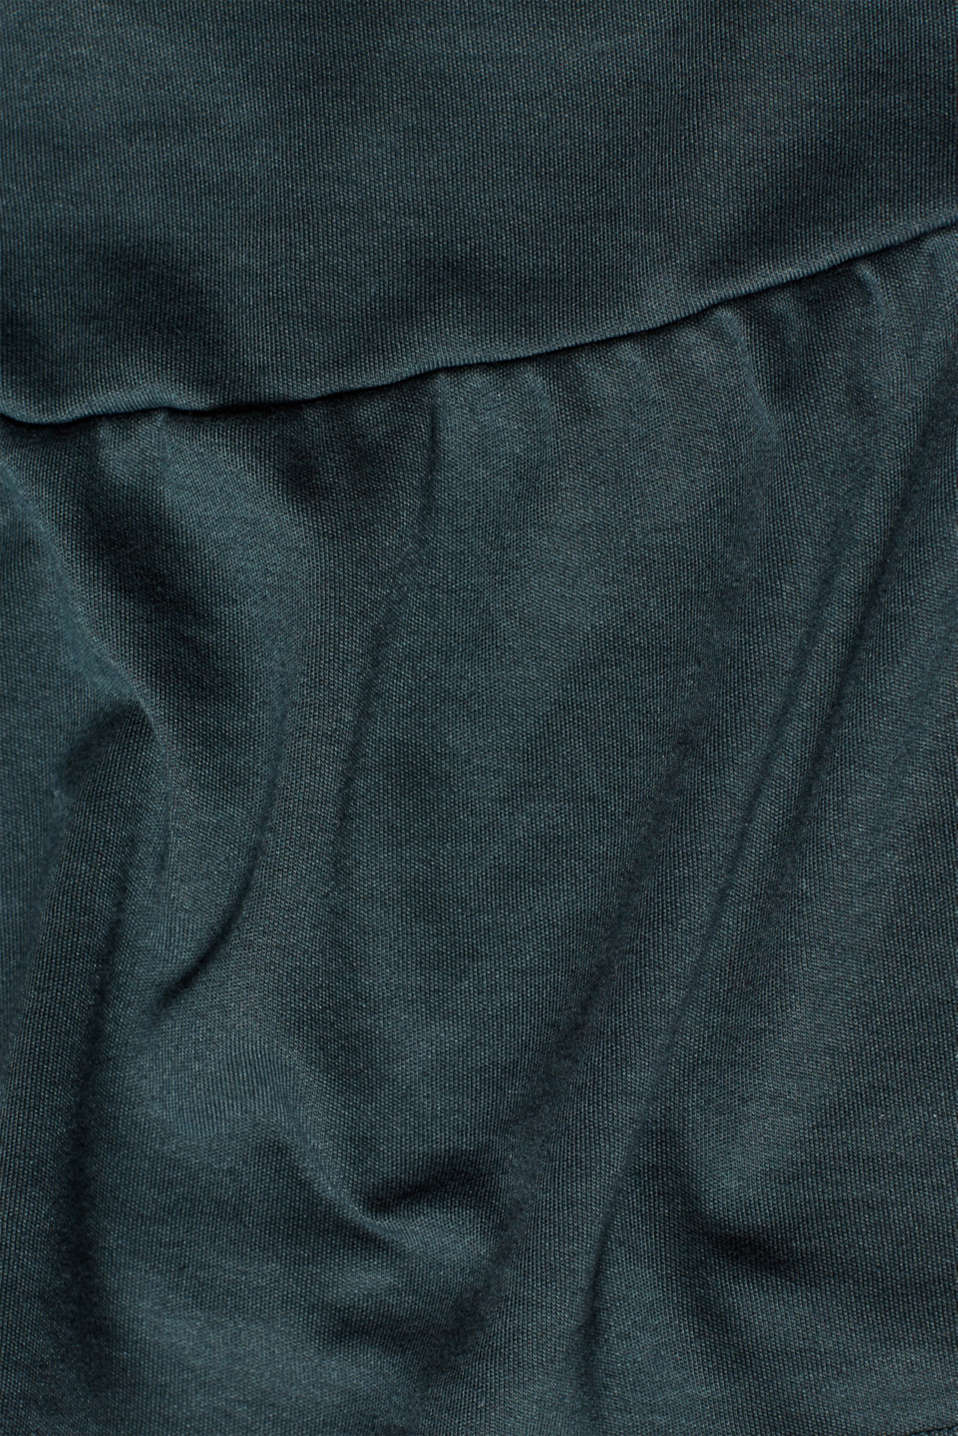 Jersey tunic with striped ribbed trims, LCDARK TEAL GREE, detail image number 3